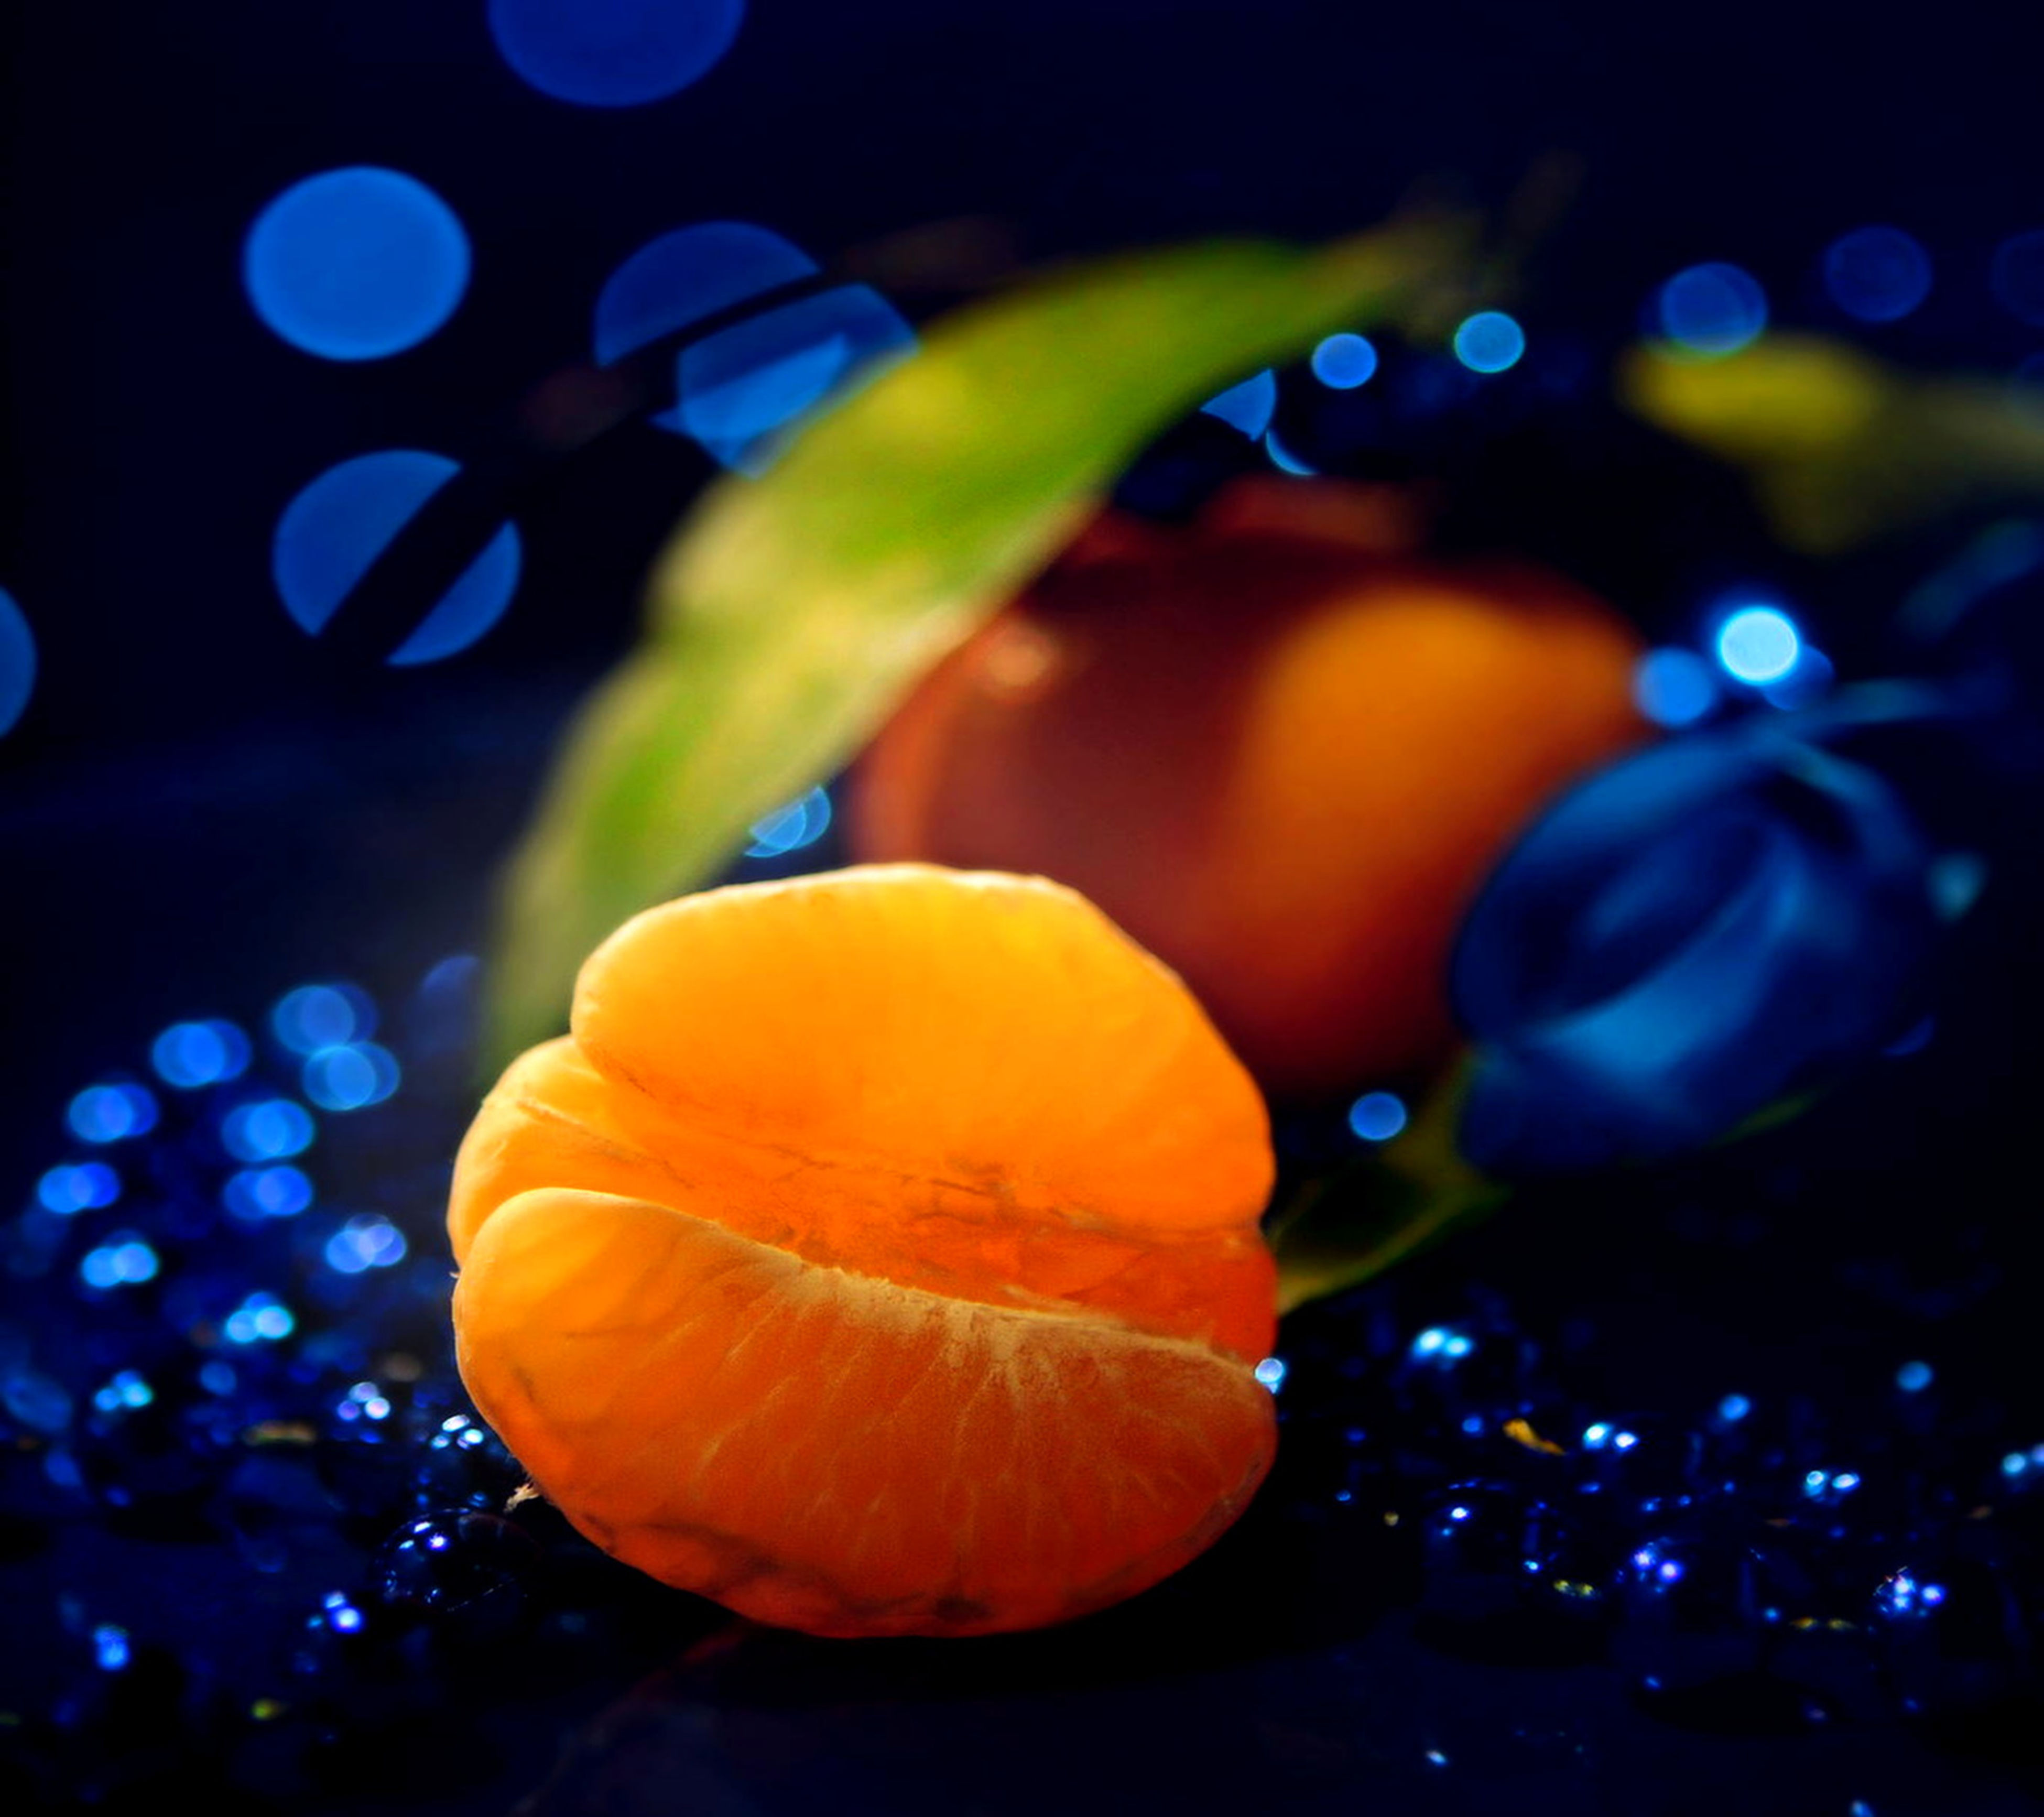 close-up, focus on foreground, orange color, indoors, multi colored, illuminated, yellow, no people, selective focus, glowing, night, blue, nature, freshness, beauty in nature, colorful, celebration, lens flare, decoration